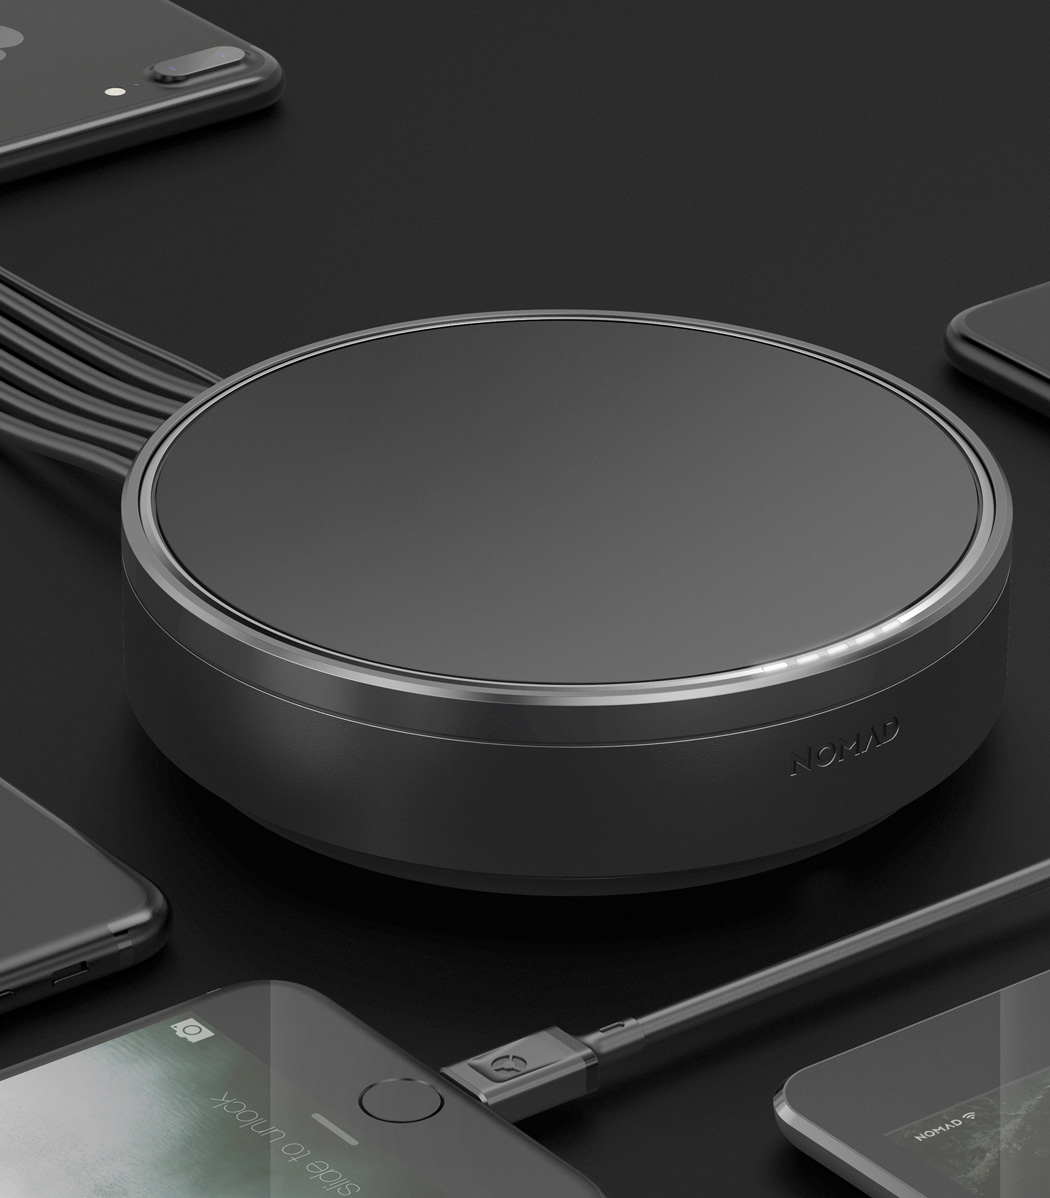 nomad_wireless_charging_hub_02